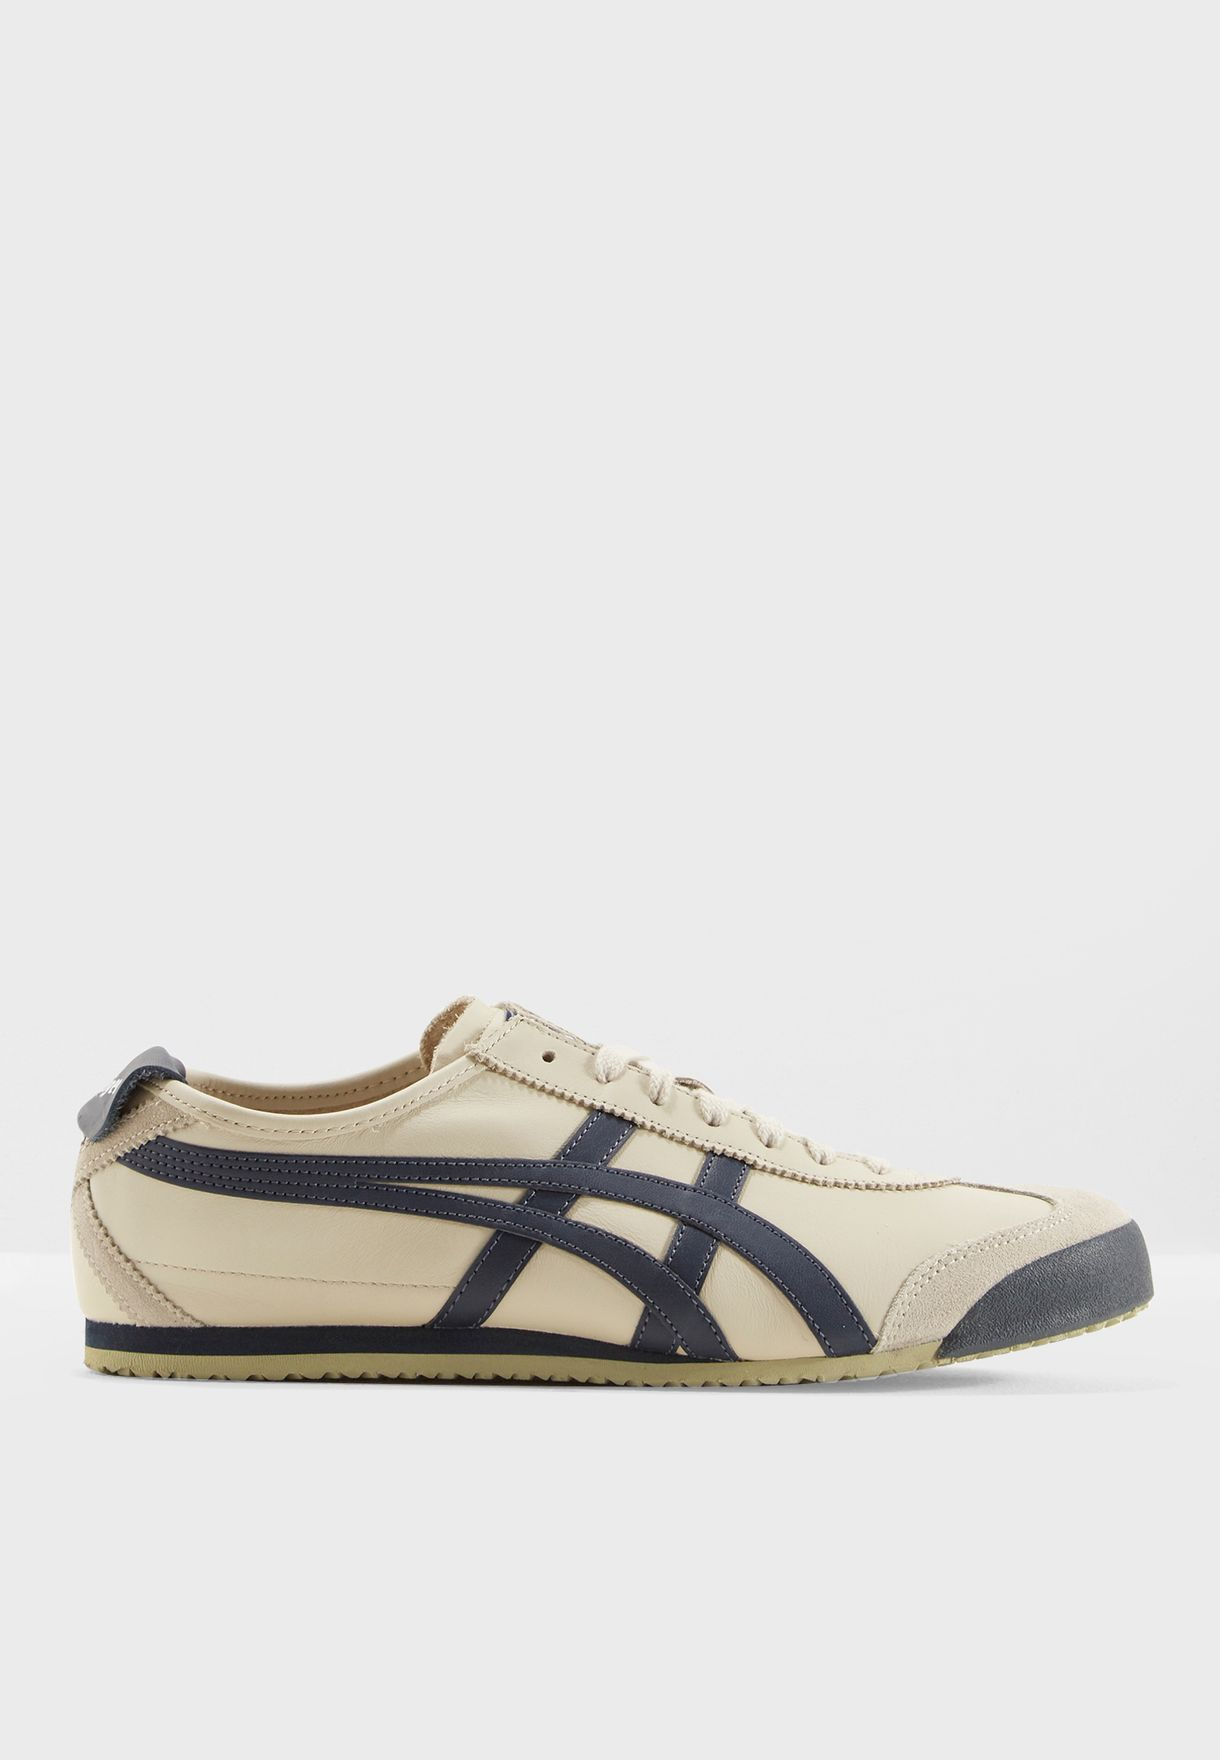 onitsuka tiger mexico 66 in dubai us